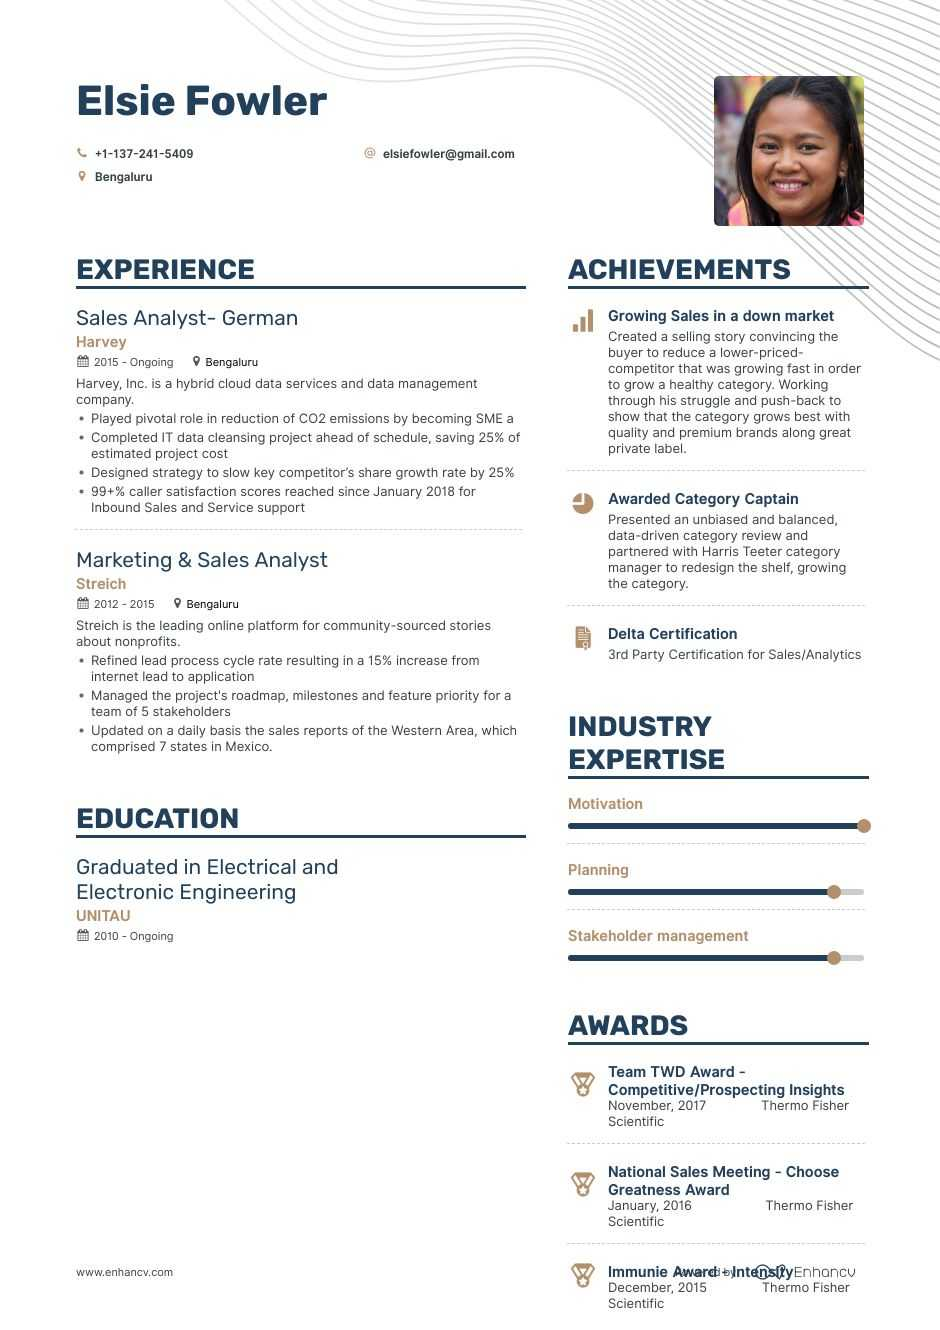 top analyst resume examples samples for enhancv walgreens customer service on the job Resume Sales Resume Examples 2020